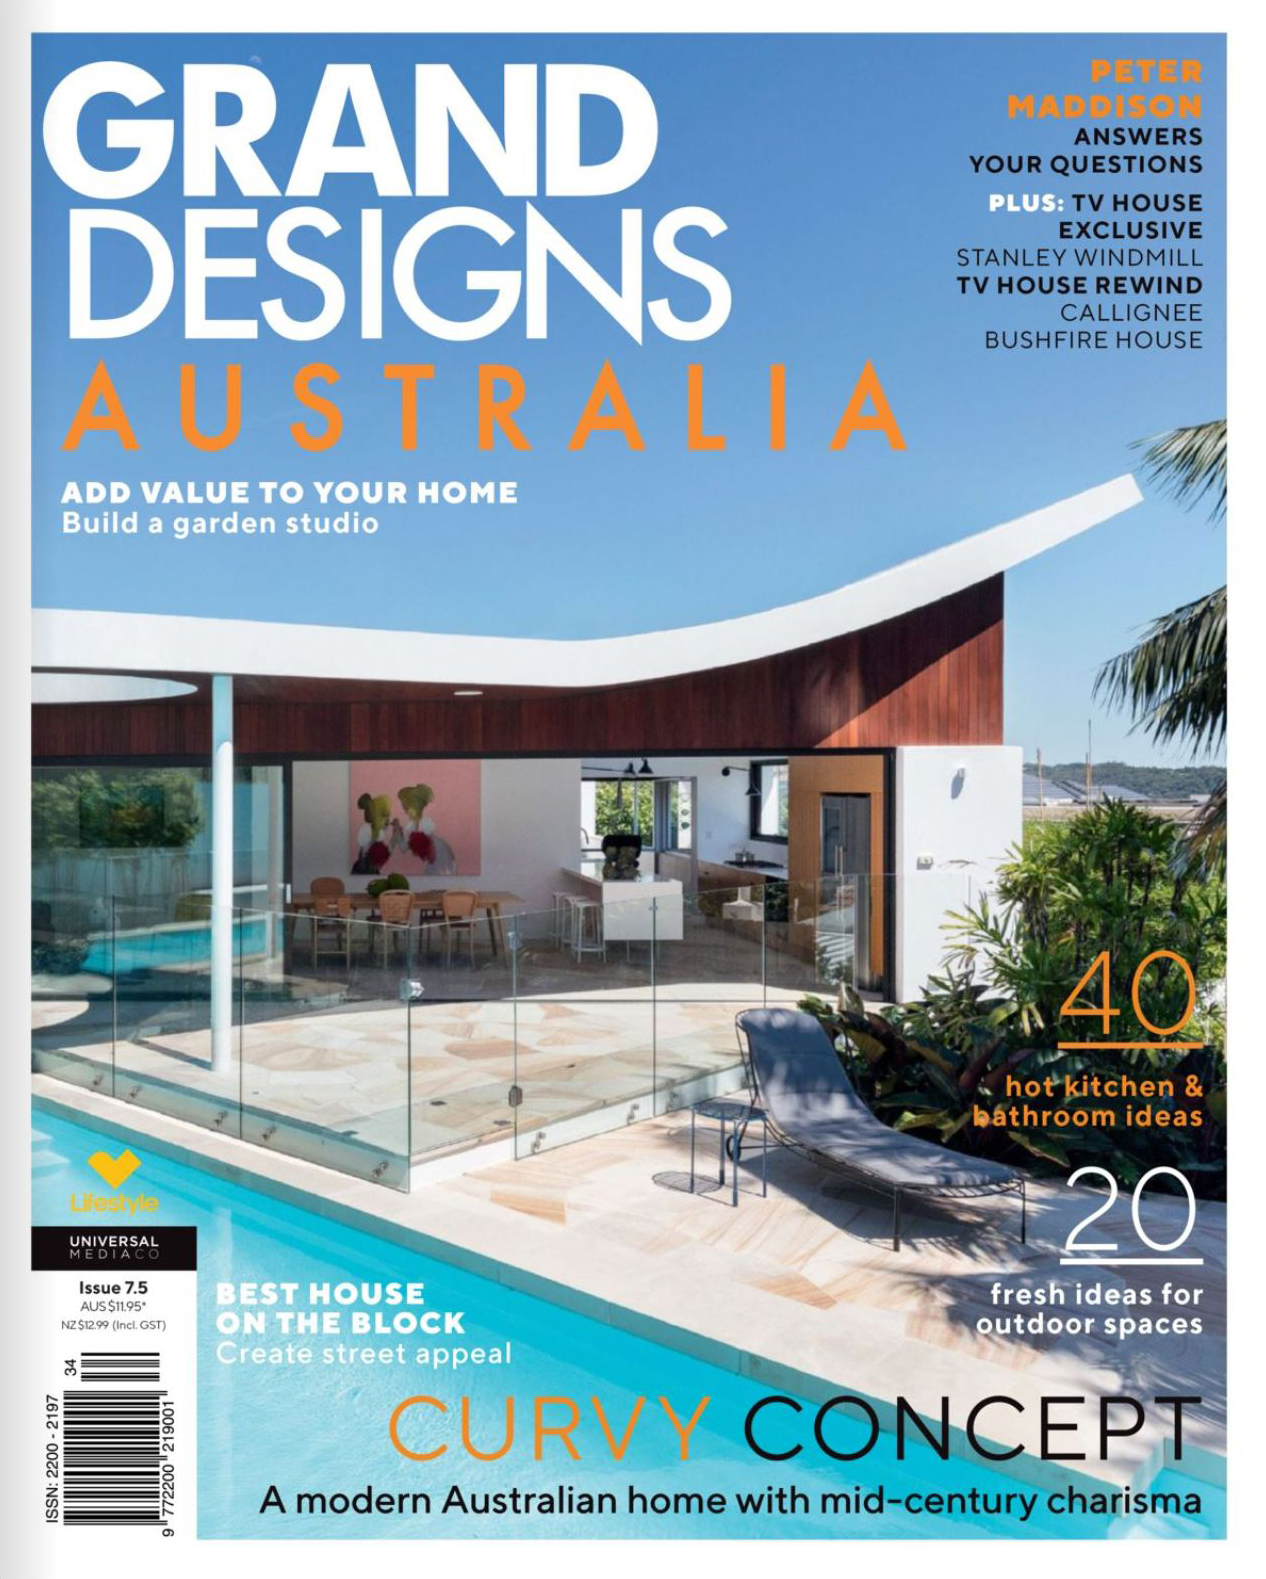 THIS PROJECT IS FEATURED IN GRAND DESIGNS AUSTRALIA MAGAZINE, ISSUE 7.5 NOVEMBER 2018 ON PAGE 144